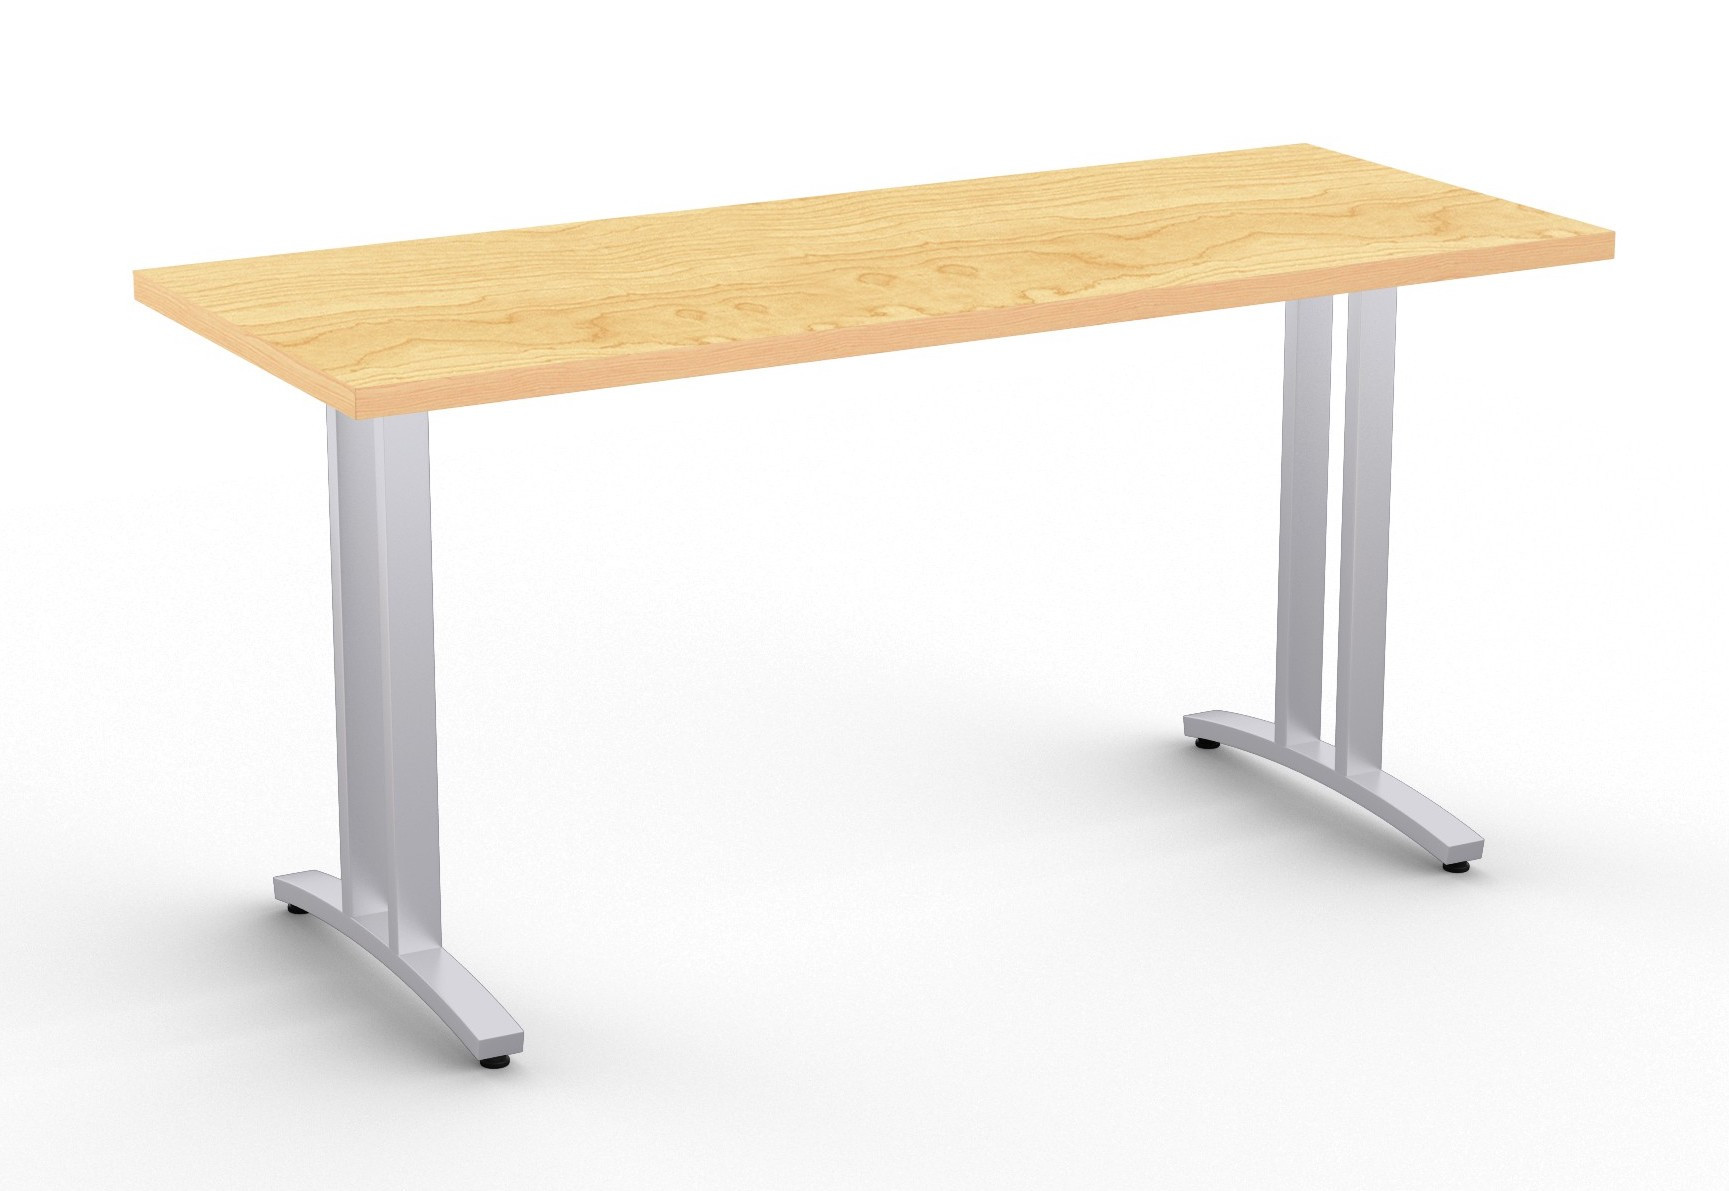 special-t structure 2tl work table in crema maple